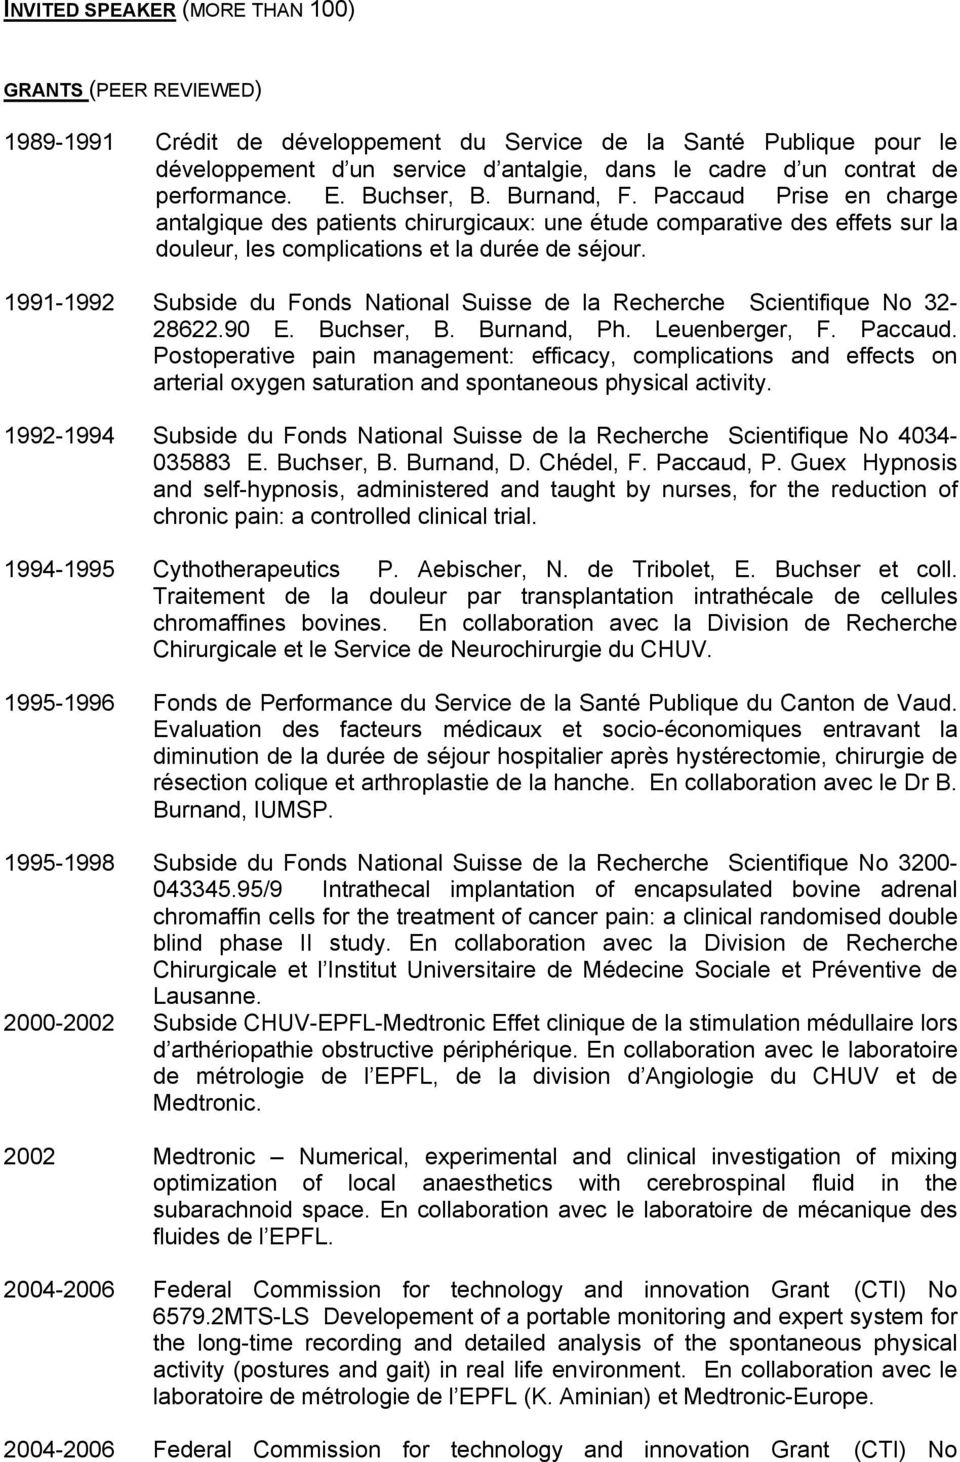 1991-1992 Subside du Fonds National Suisse de la Recherche Scientifique No 32-28622.90 E. Buchser, B. Burnand, Ph. Leuenberger, F. Paccaud.